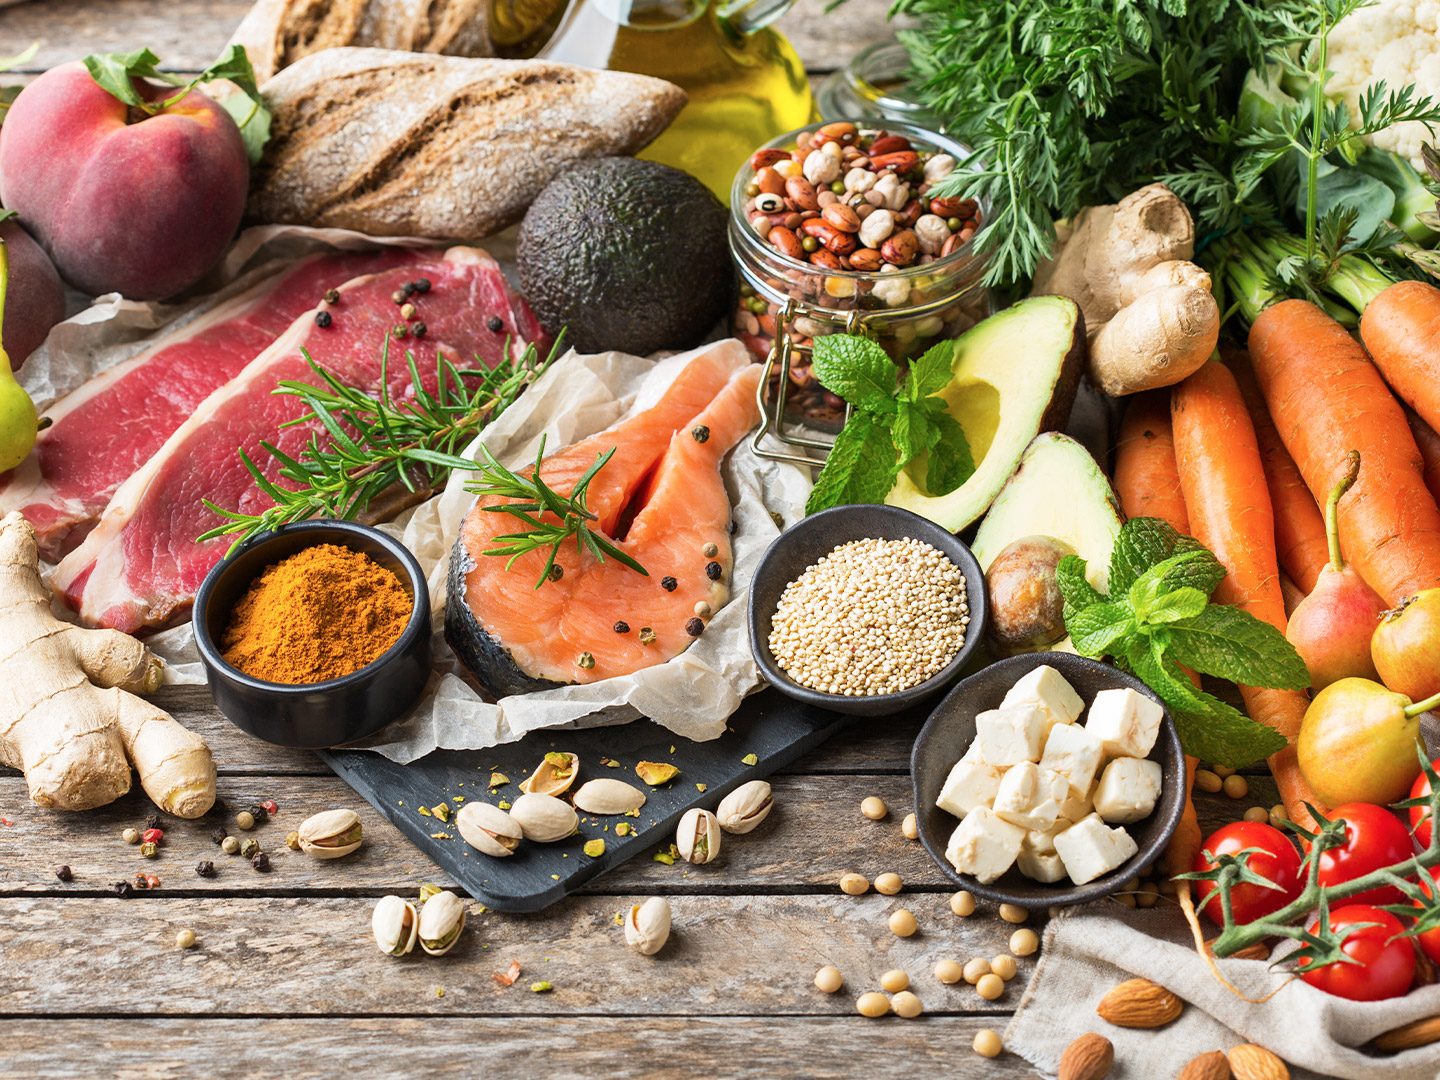 A spread of different fruits, vegetables, meats, spices, nuts and grains